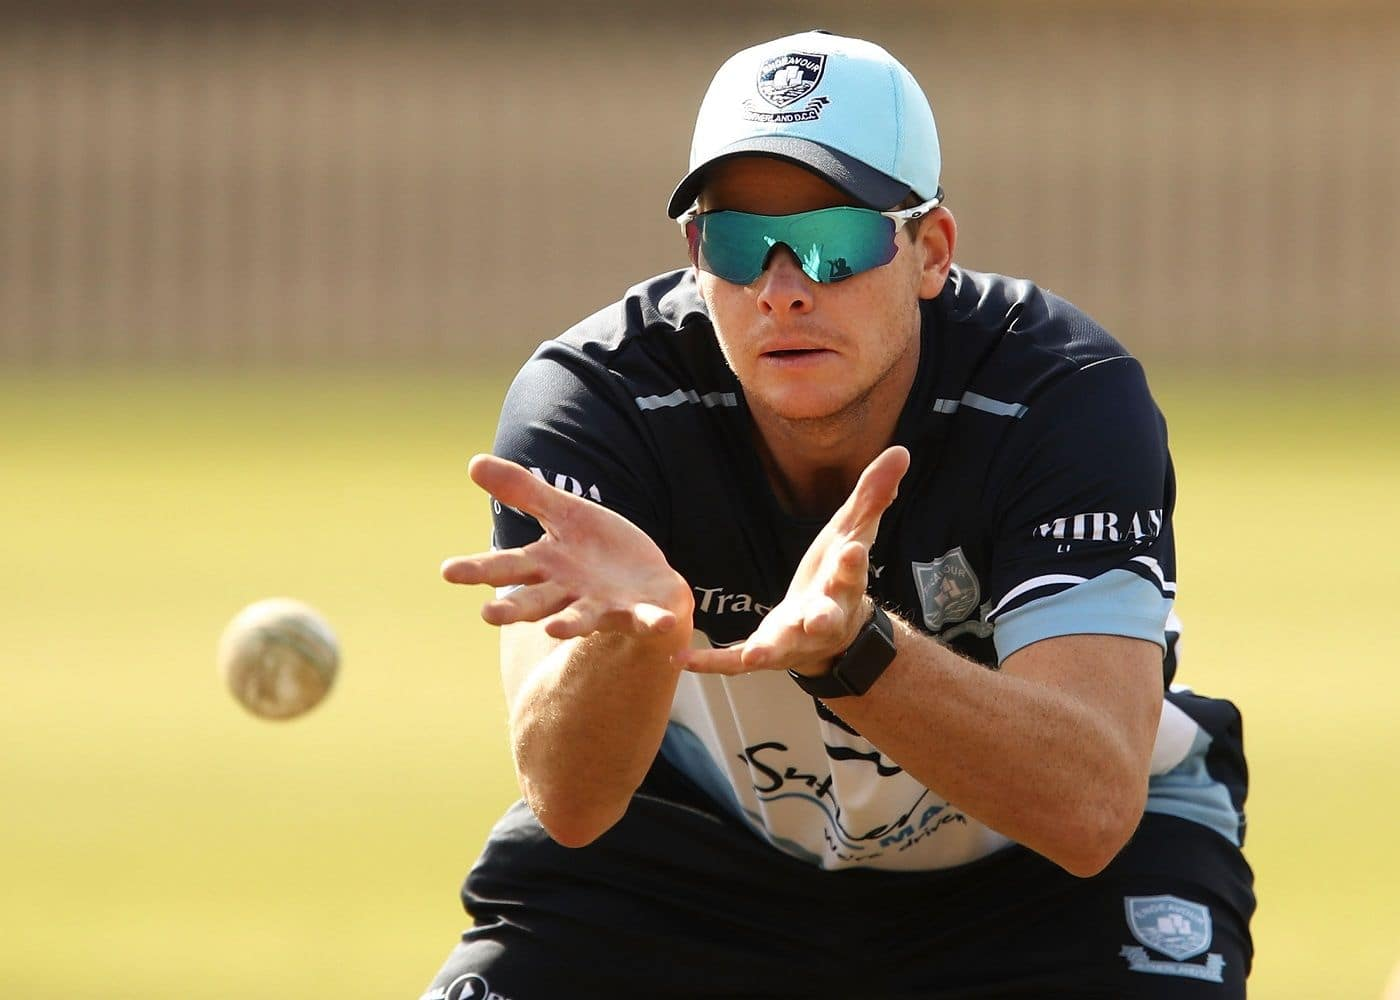 Steve Smith bats against Ashes pace trio at SCG nets ahead of India Tests